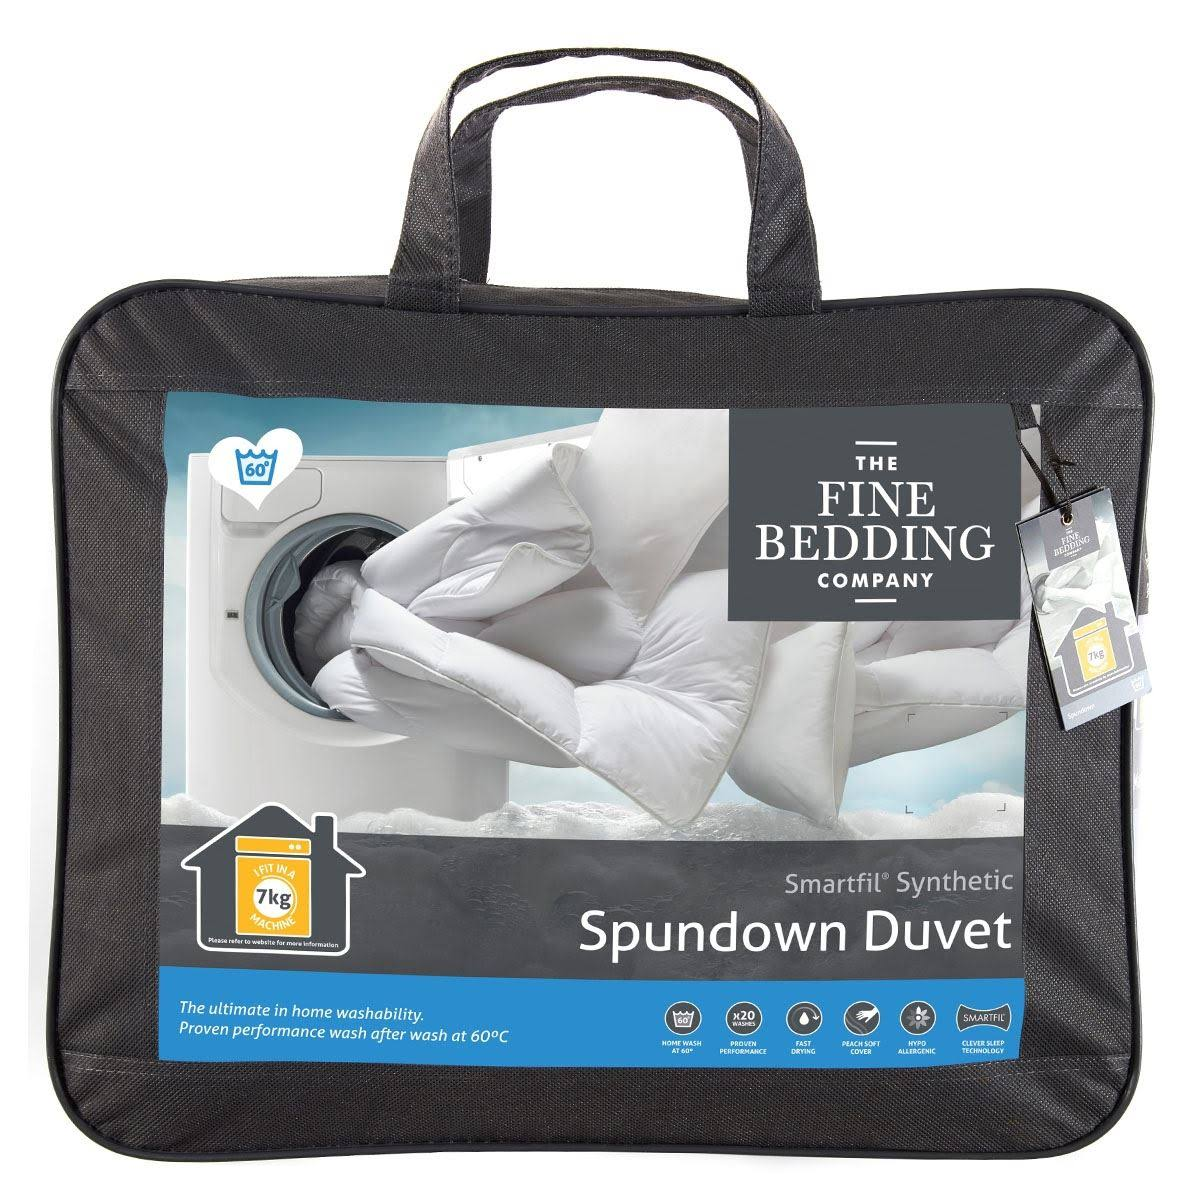 """Spundown"" Duvet in 4.5/7.0/10.5 & 13.5 tog values"